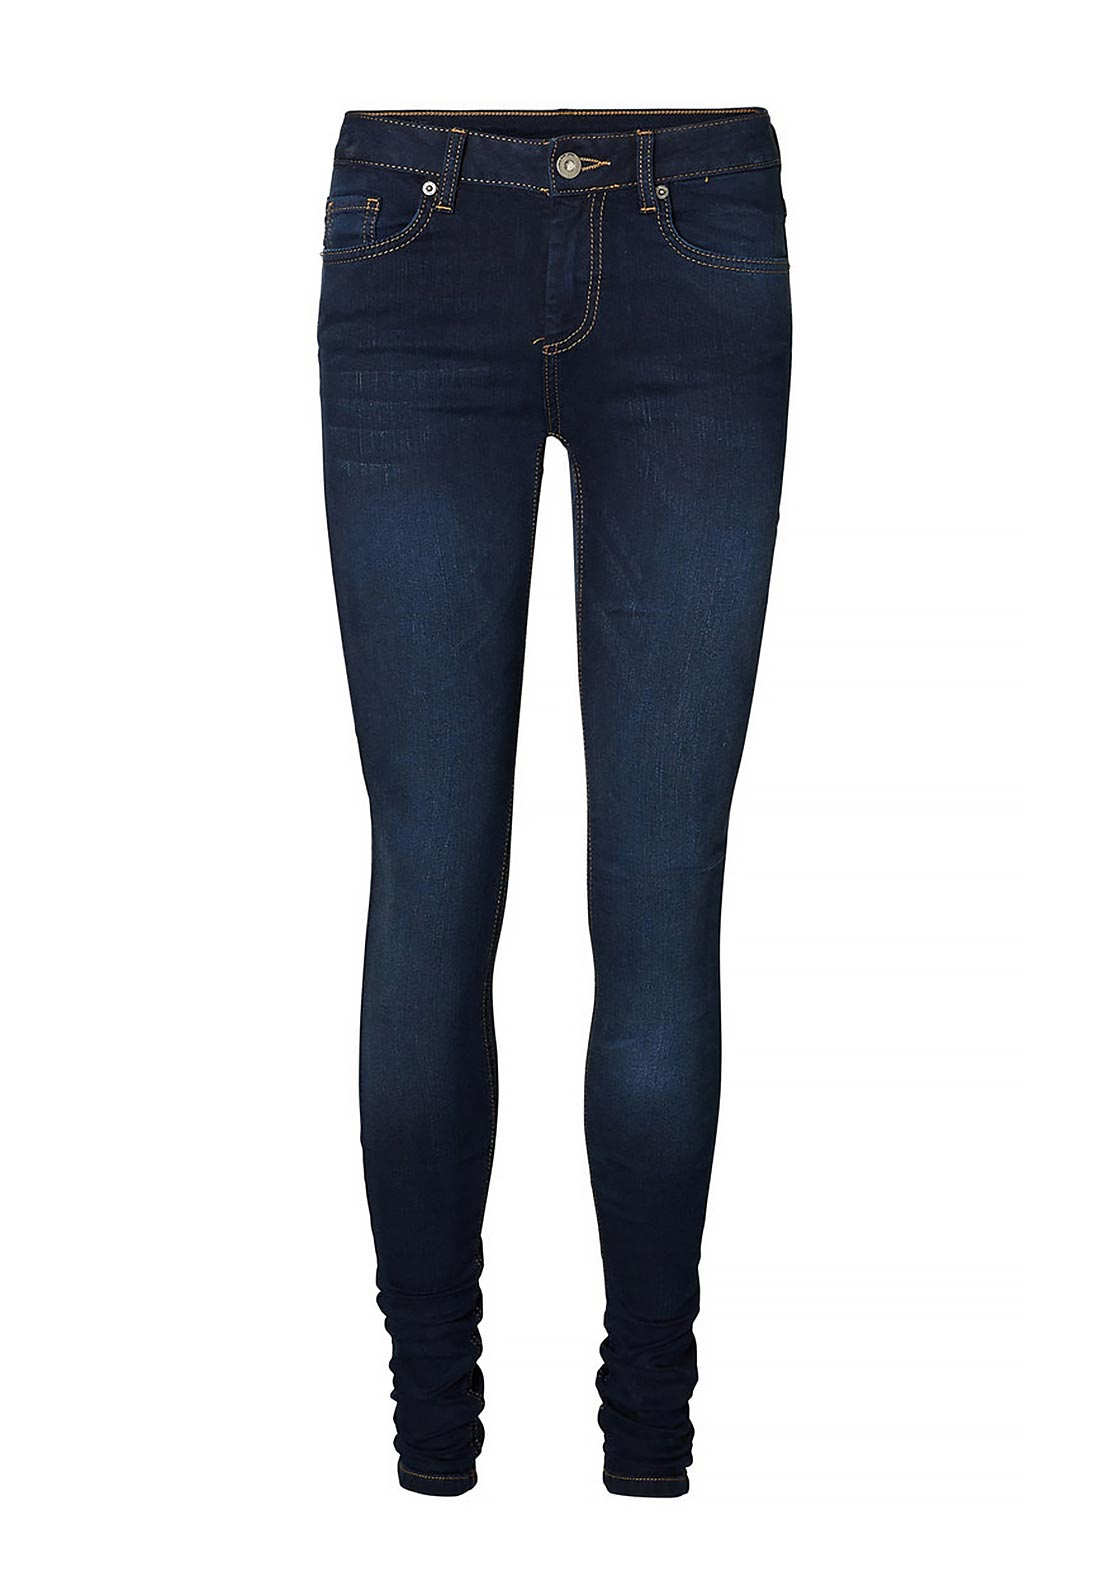 Vero Moda Super Fix Skinny Jeans, Dark Blue Denim